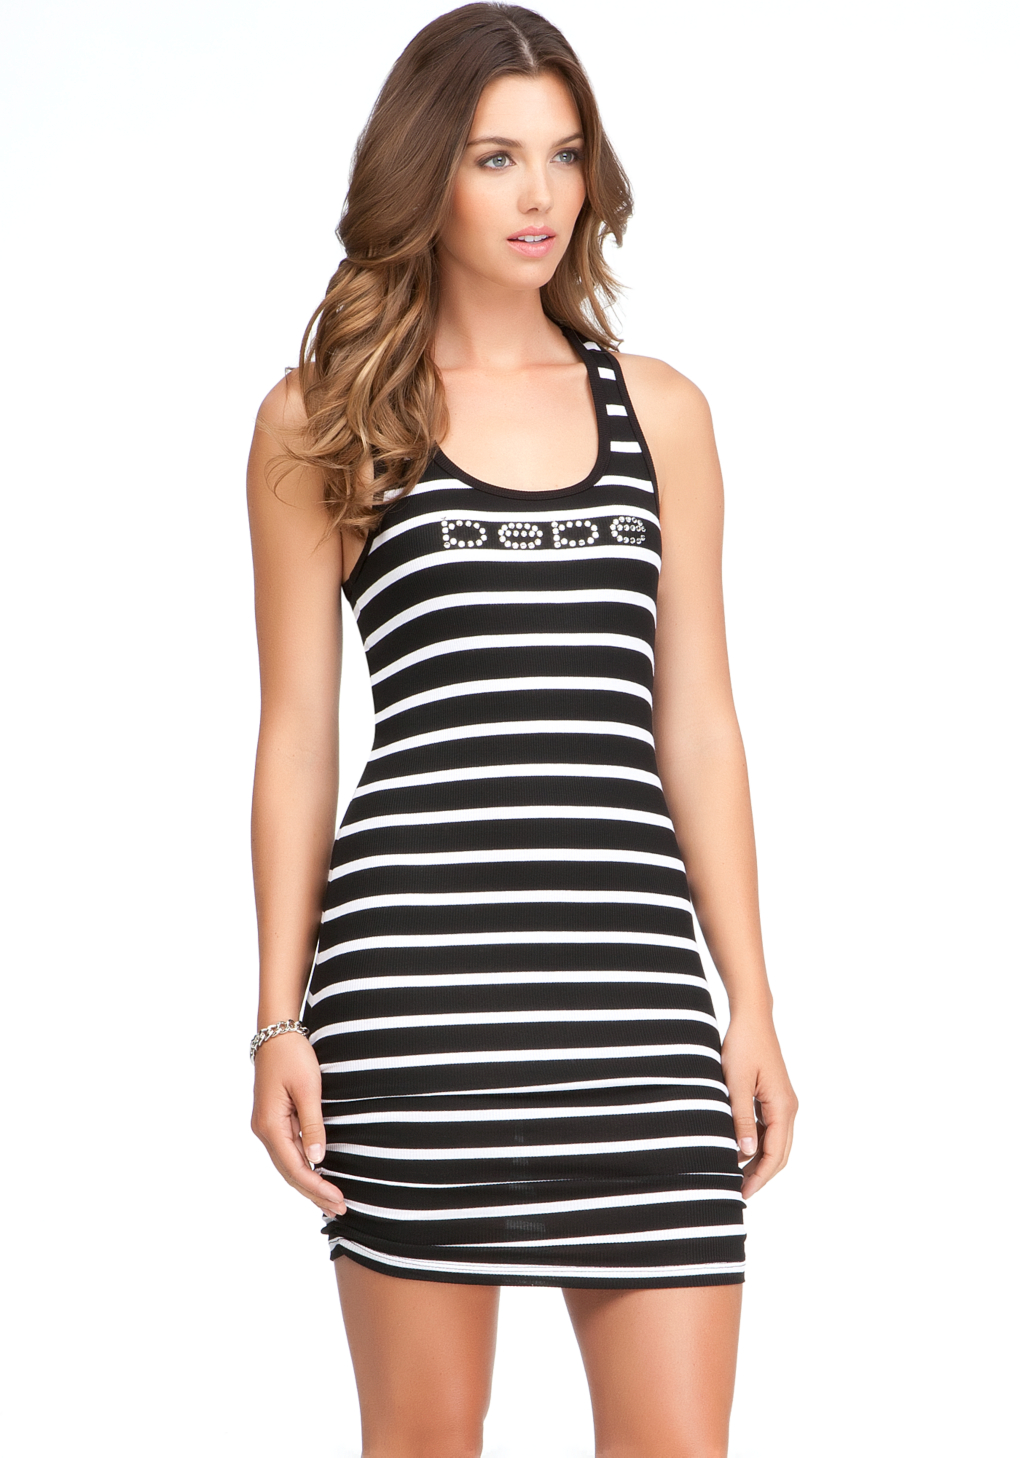 Get the best deals on gray bebe striped dress and save up to 70% off at Poshmark now! Whatever you're shopping for, we've got it.